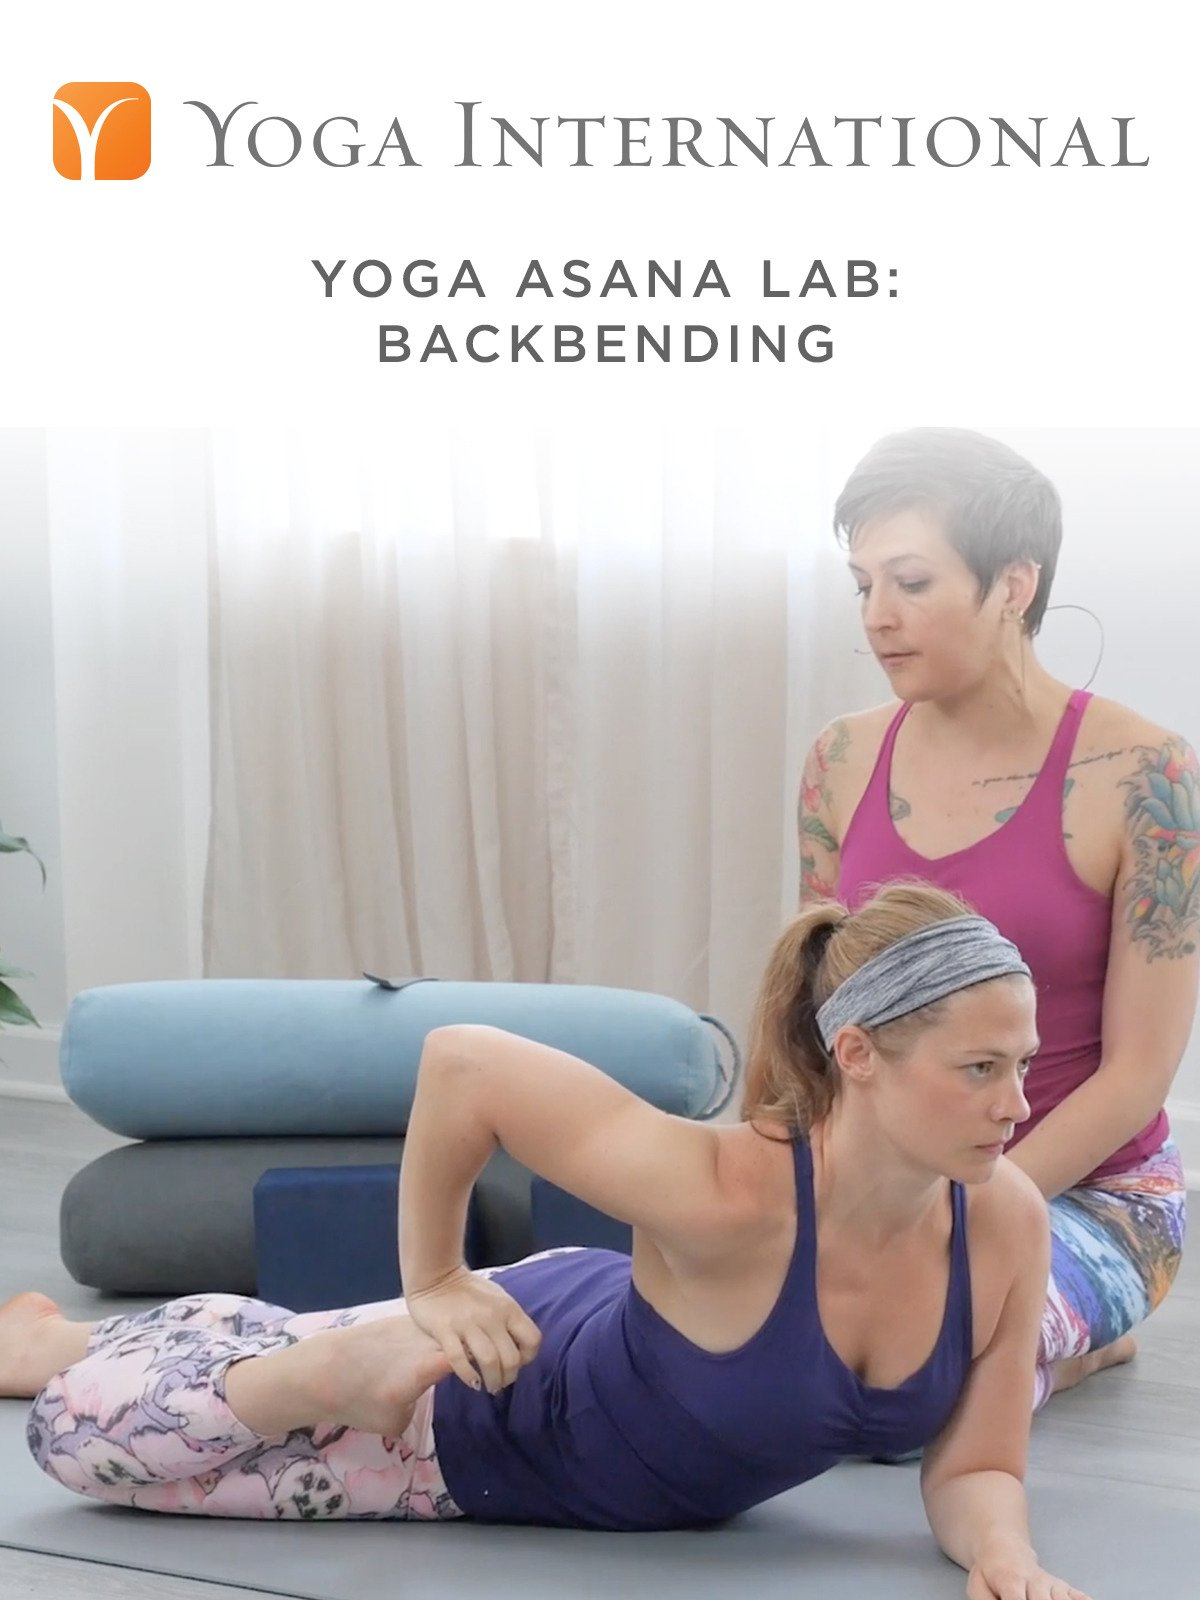 Amazon.com: Watch Yoga Asana Lab: Backbending | Prime Video